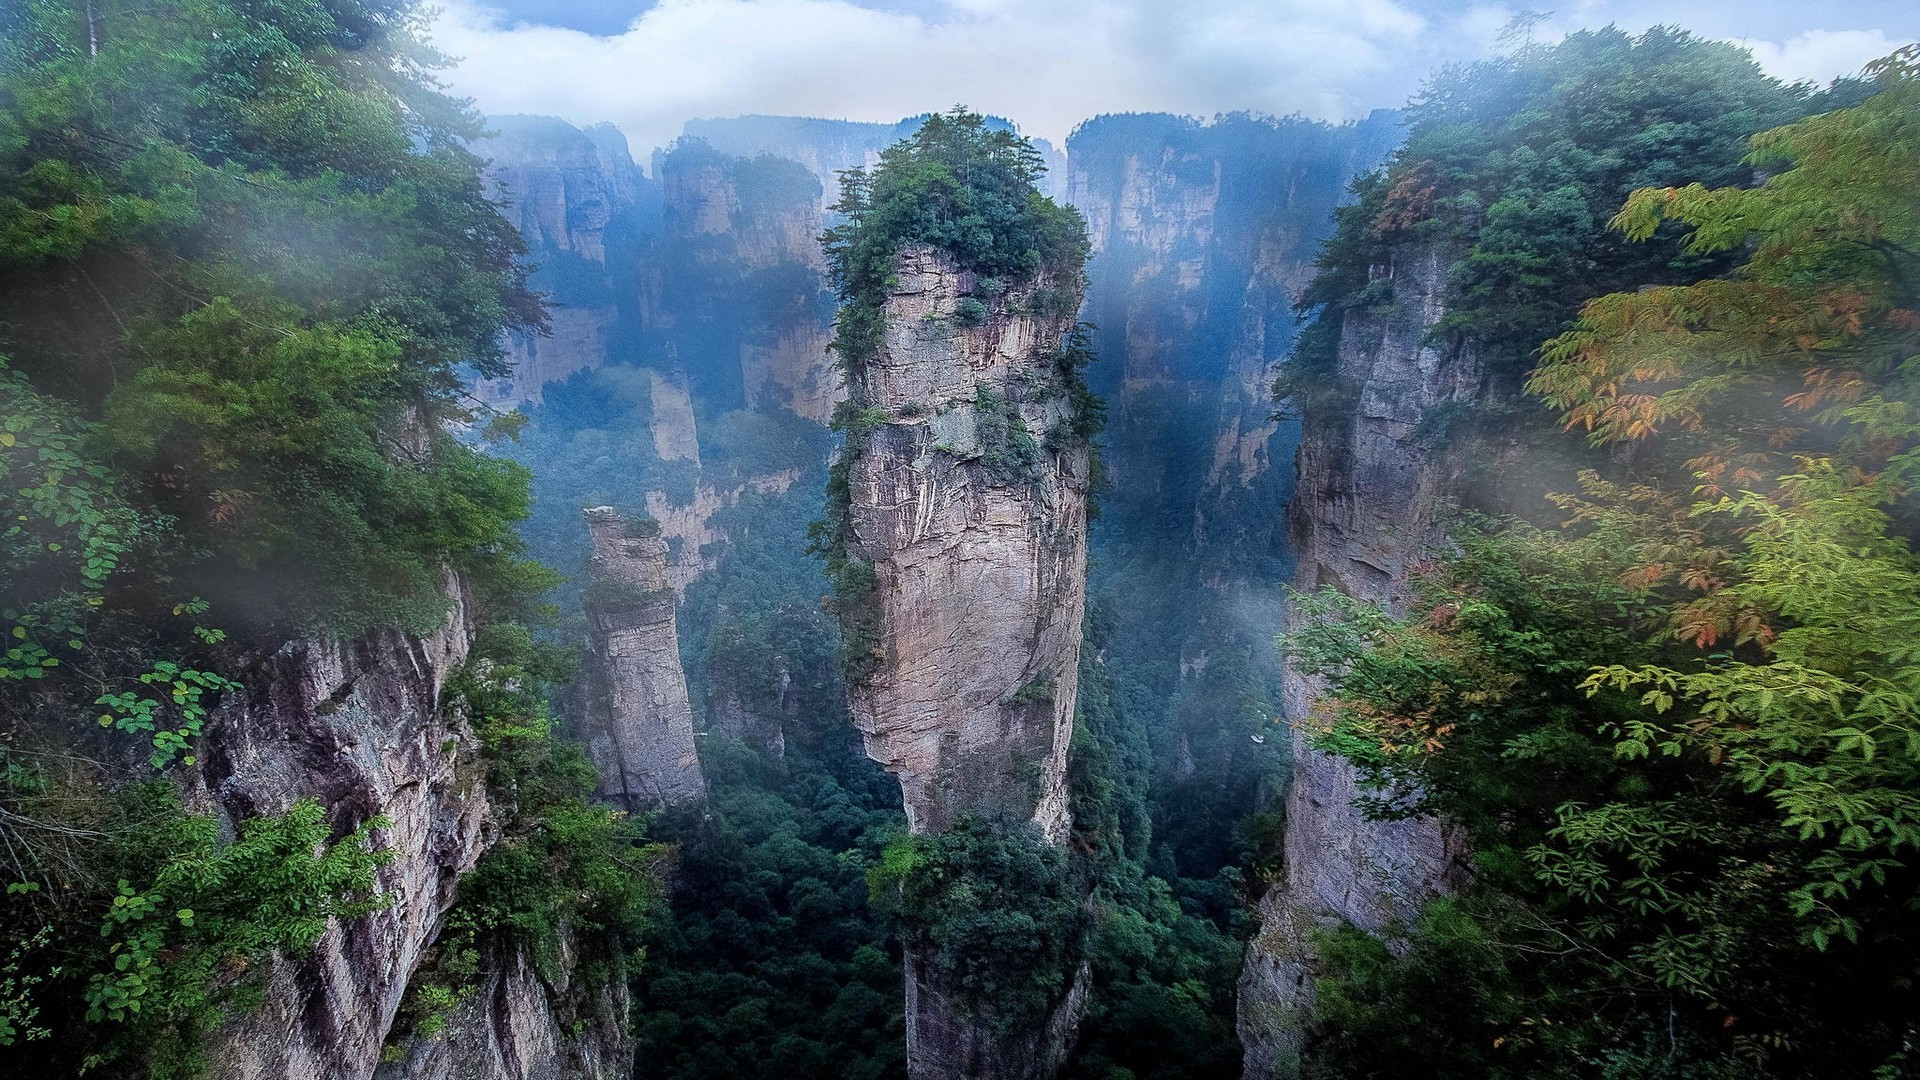 nature, Landscape, Mist, National Park, Mountain, Cliff, Avatar, Morning,  China Wallpapers HD / Desktop and Mobile Backgrounds